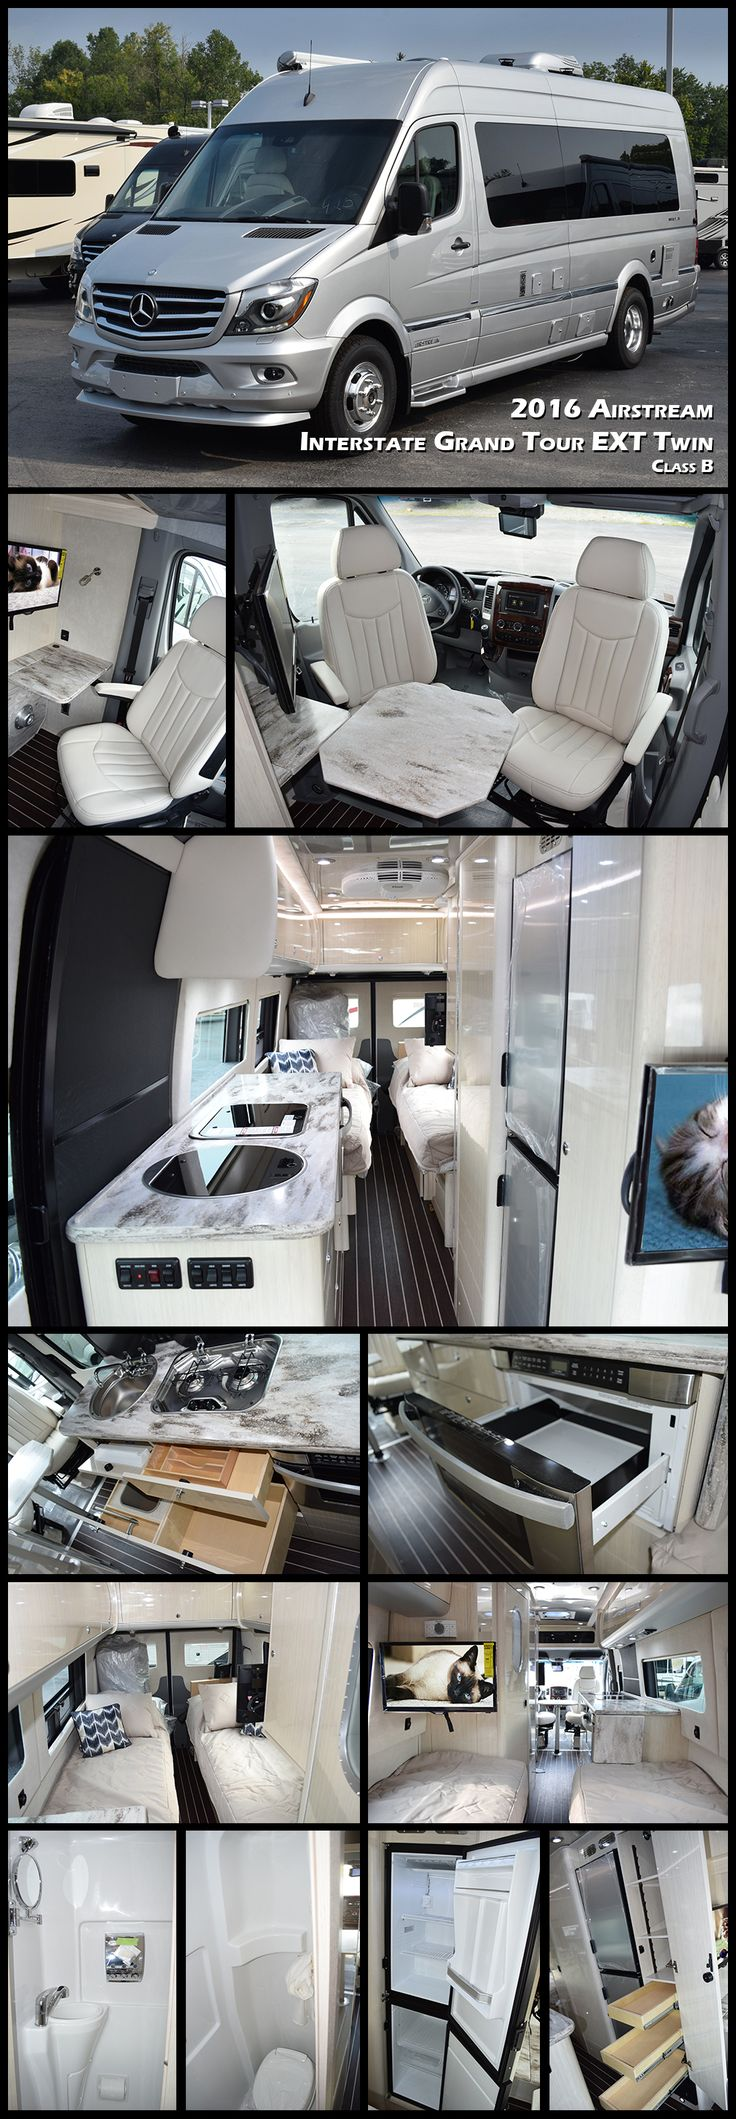 2016 AIRSTREAM INTERSTATE GRAND TOUR EXT TWIN Class B. Built with a focus on long-term adventures for two. This new floorplan offers a pair of twin beds. Both Grand Tour floorplans feature a larger ga